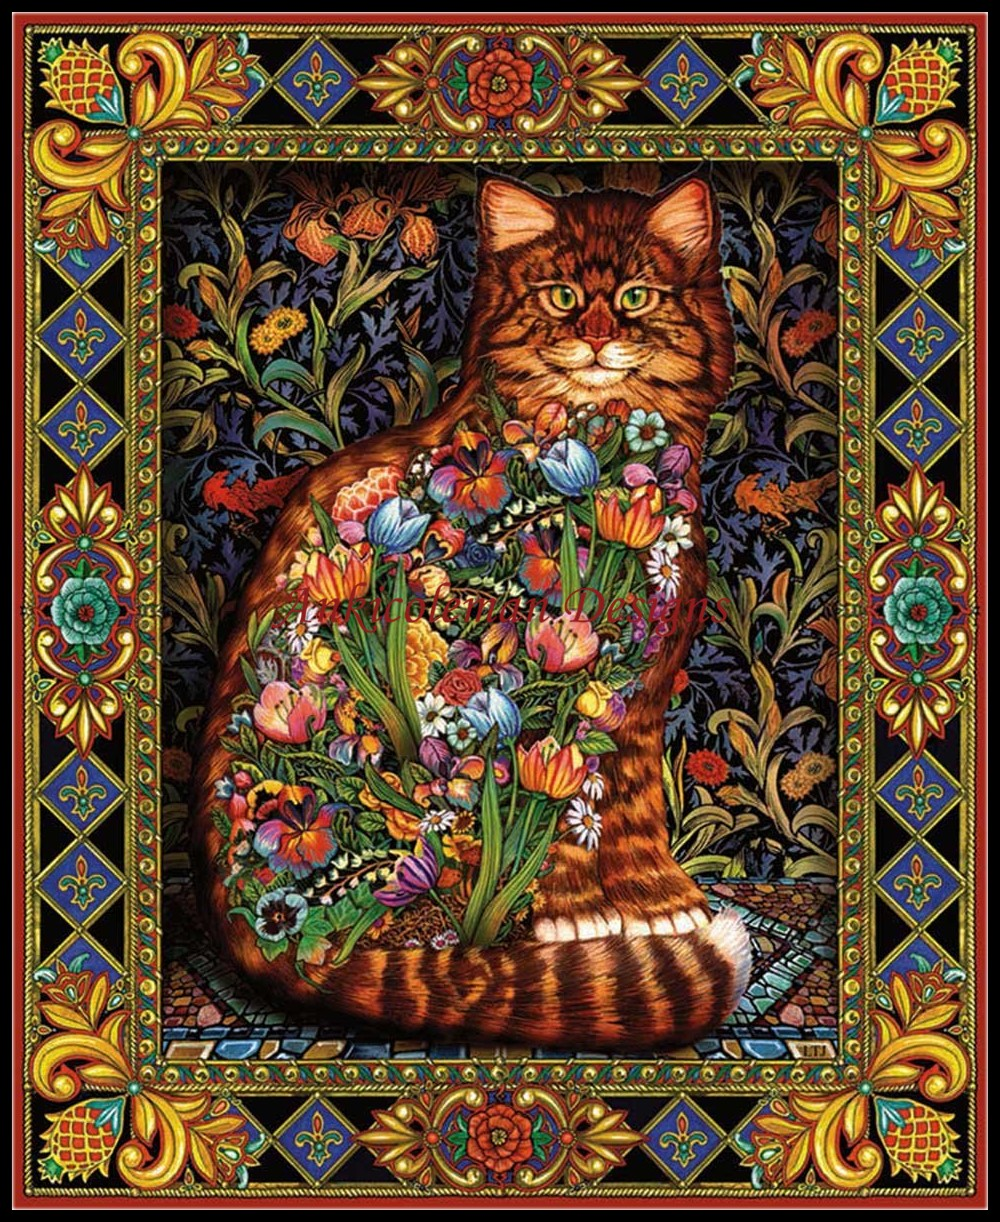 Needlework for embroidery DIY French DMC High Quality - Counted Cross Stitch Kits 14 ct Oil painting - Tapestry Cat